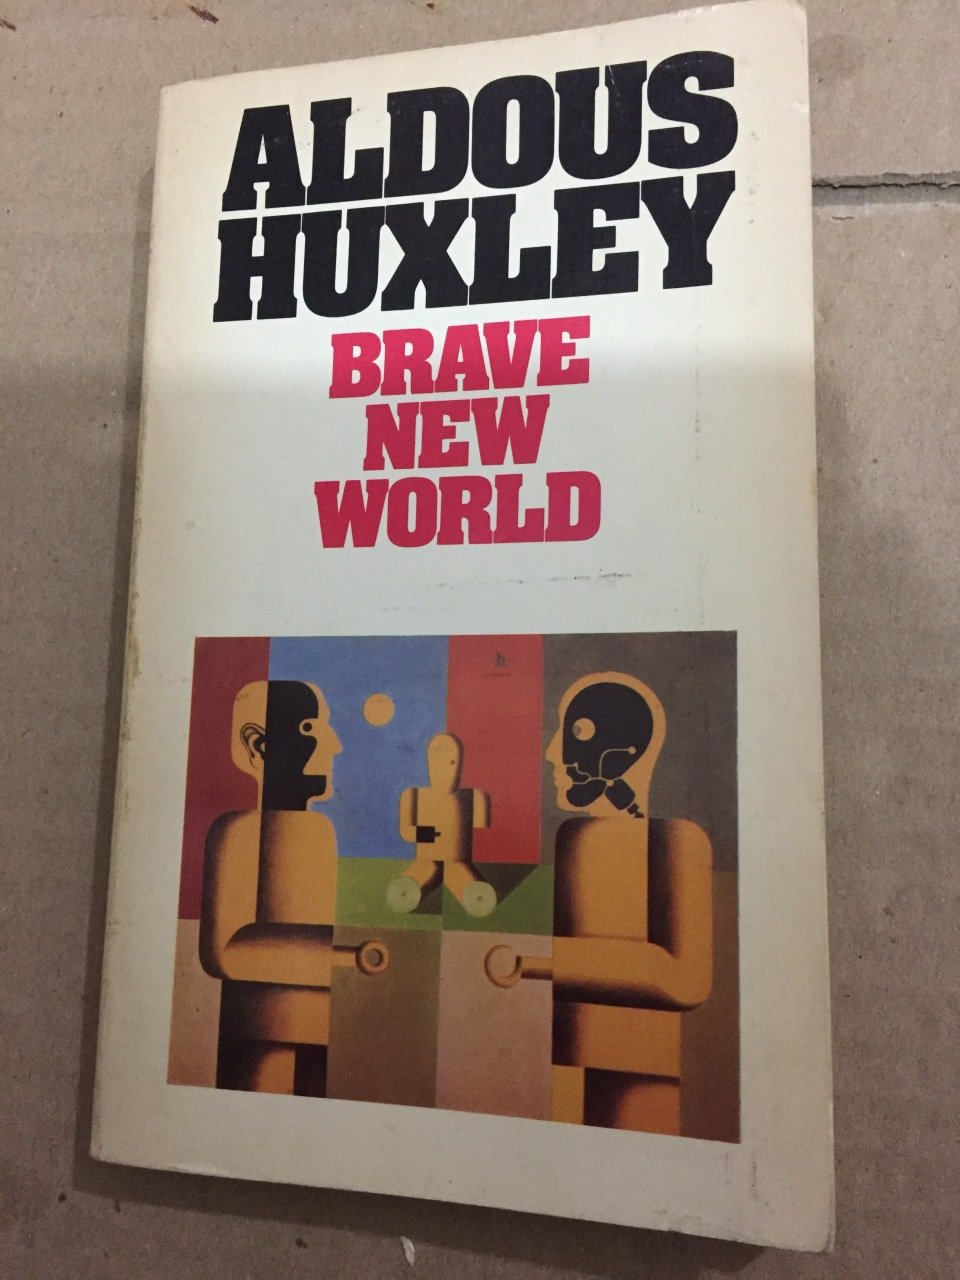 economic principles and concepts in brave new world by aldous huxley In brave new world, aldous huxley reminded us not only of the dangers and fears of the future but of the fragility of intellectual and cultural freedom his satire was harsh but resonated as a warning that a darker future may well be on the horizon, even one derived from the best intentions.